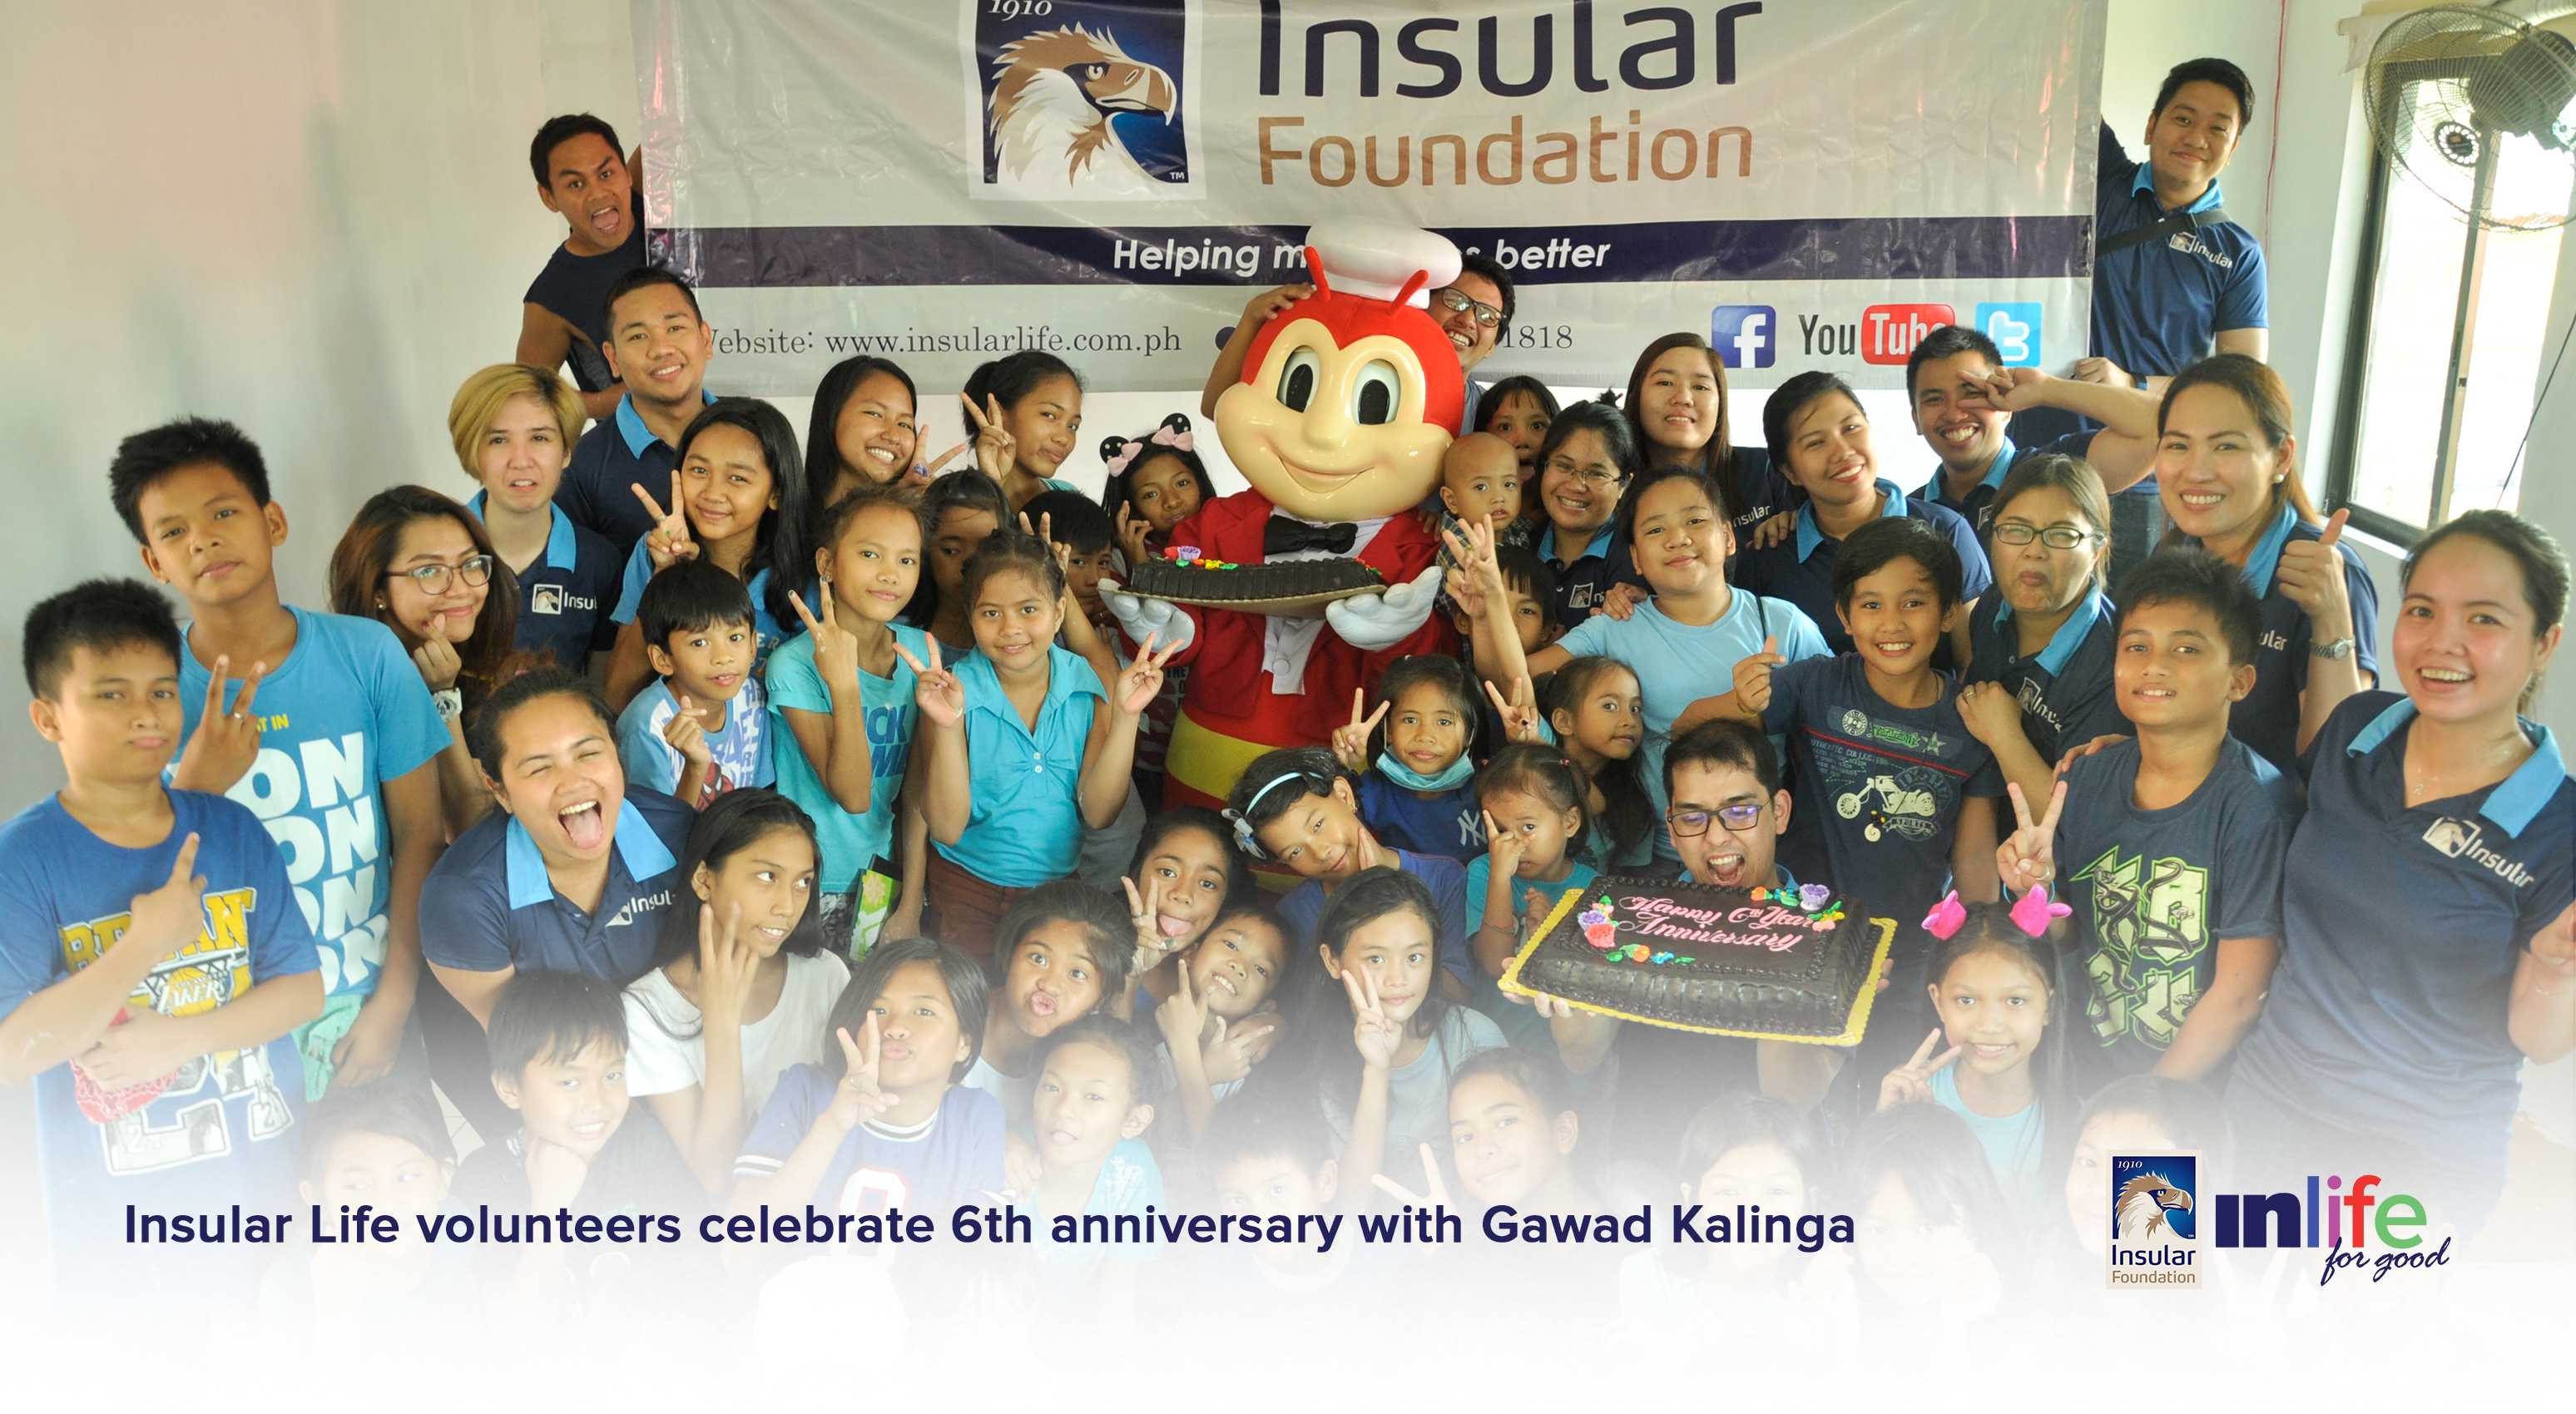 Insular Life Volunteers Celebrate 6th Anniversary With GK